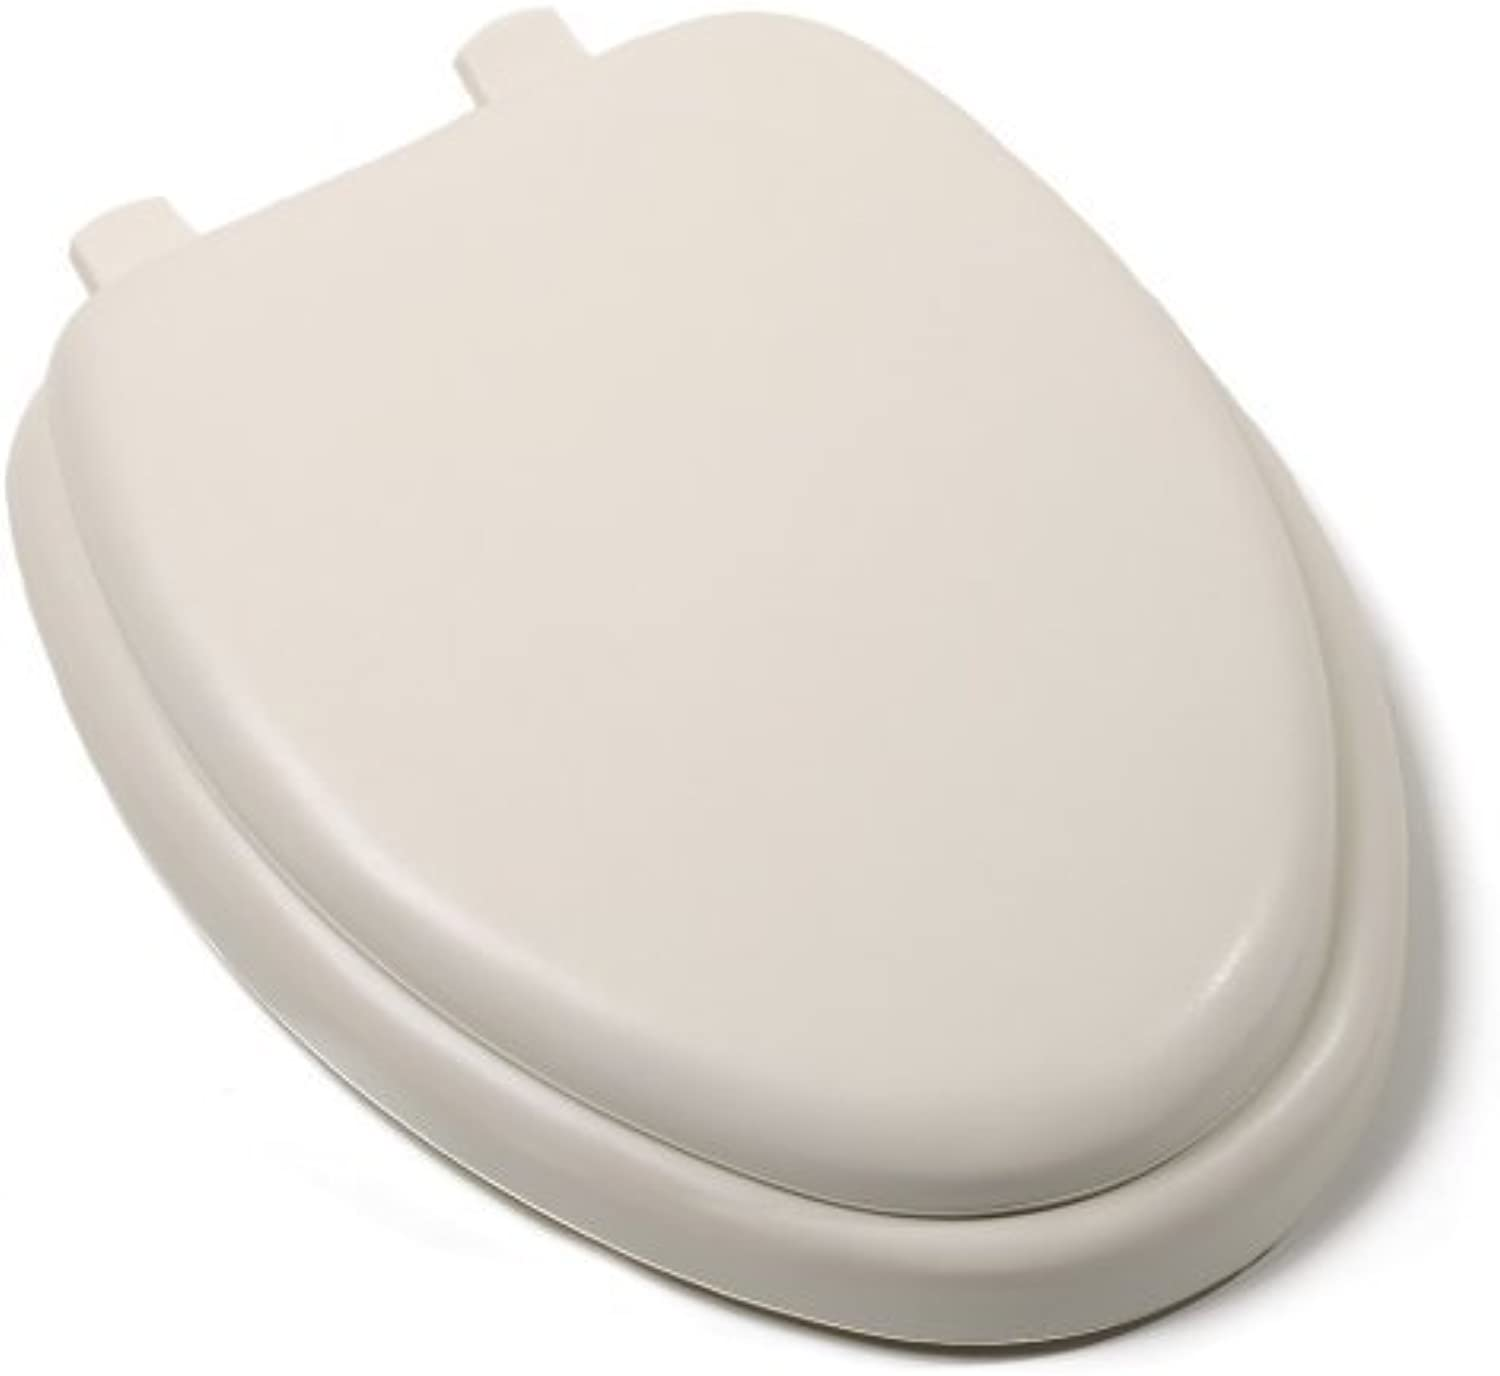 Comfort Seats C1B5E201 Deluxe Soft Toilet Seat with Wood Cores, Elongated, Bone by Comfort Seats